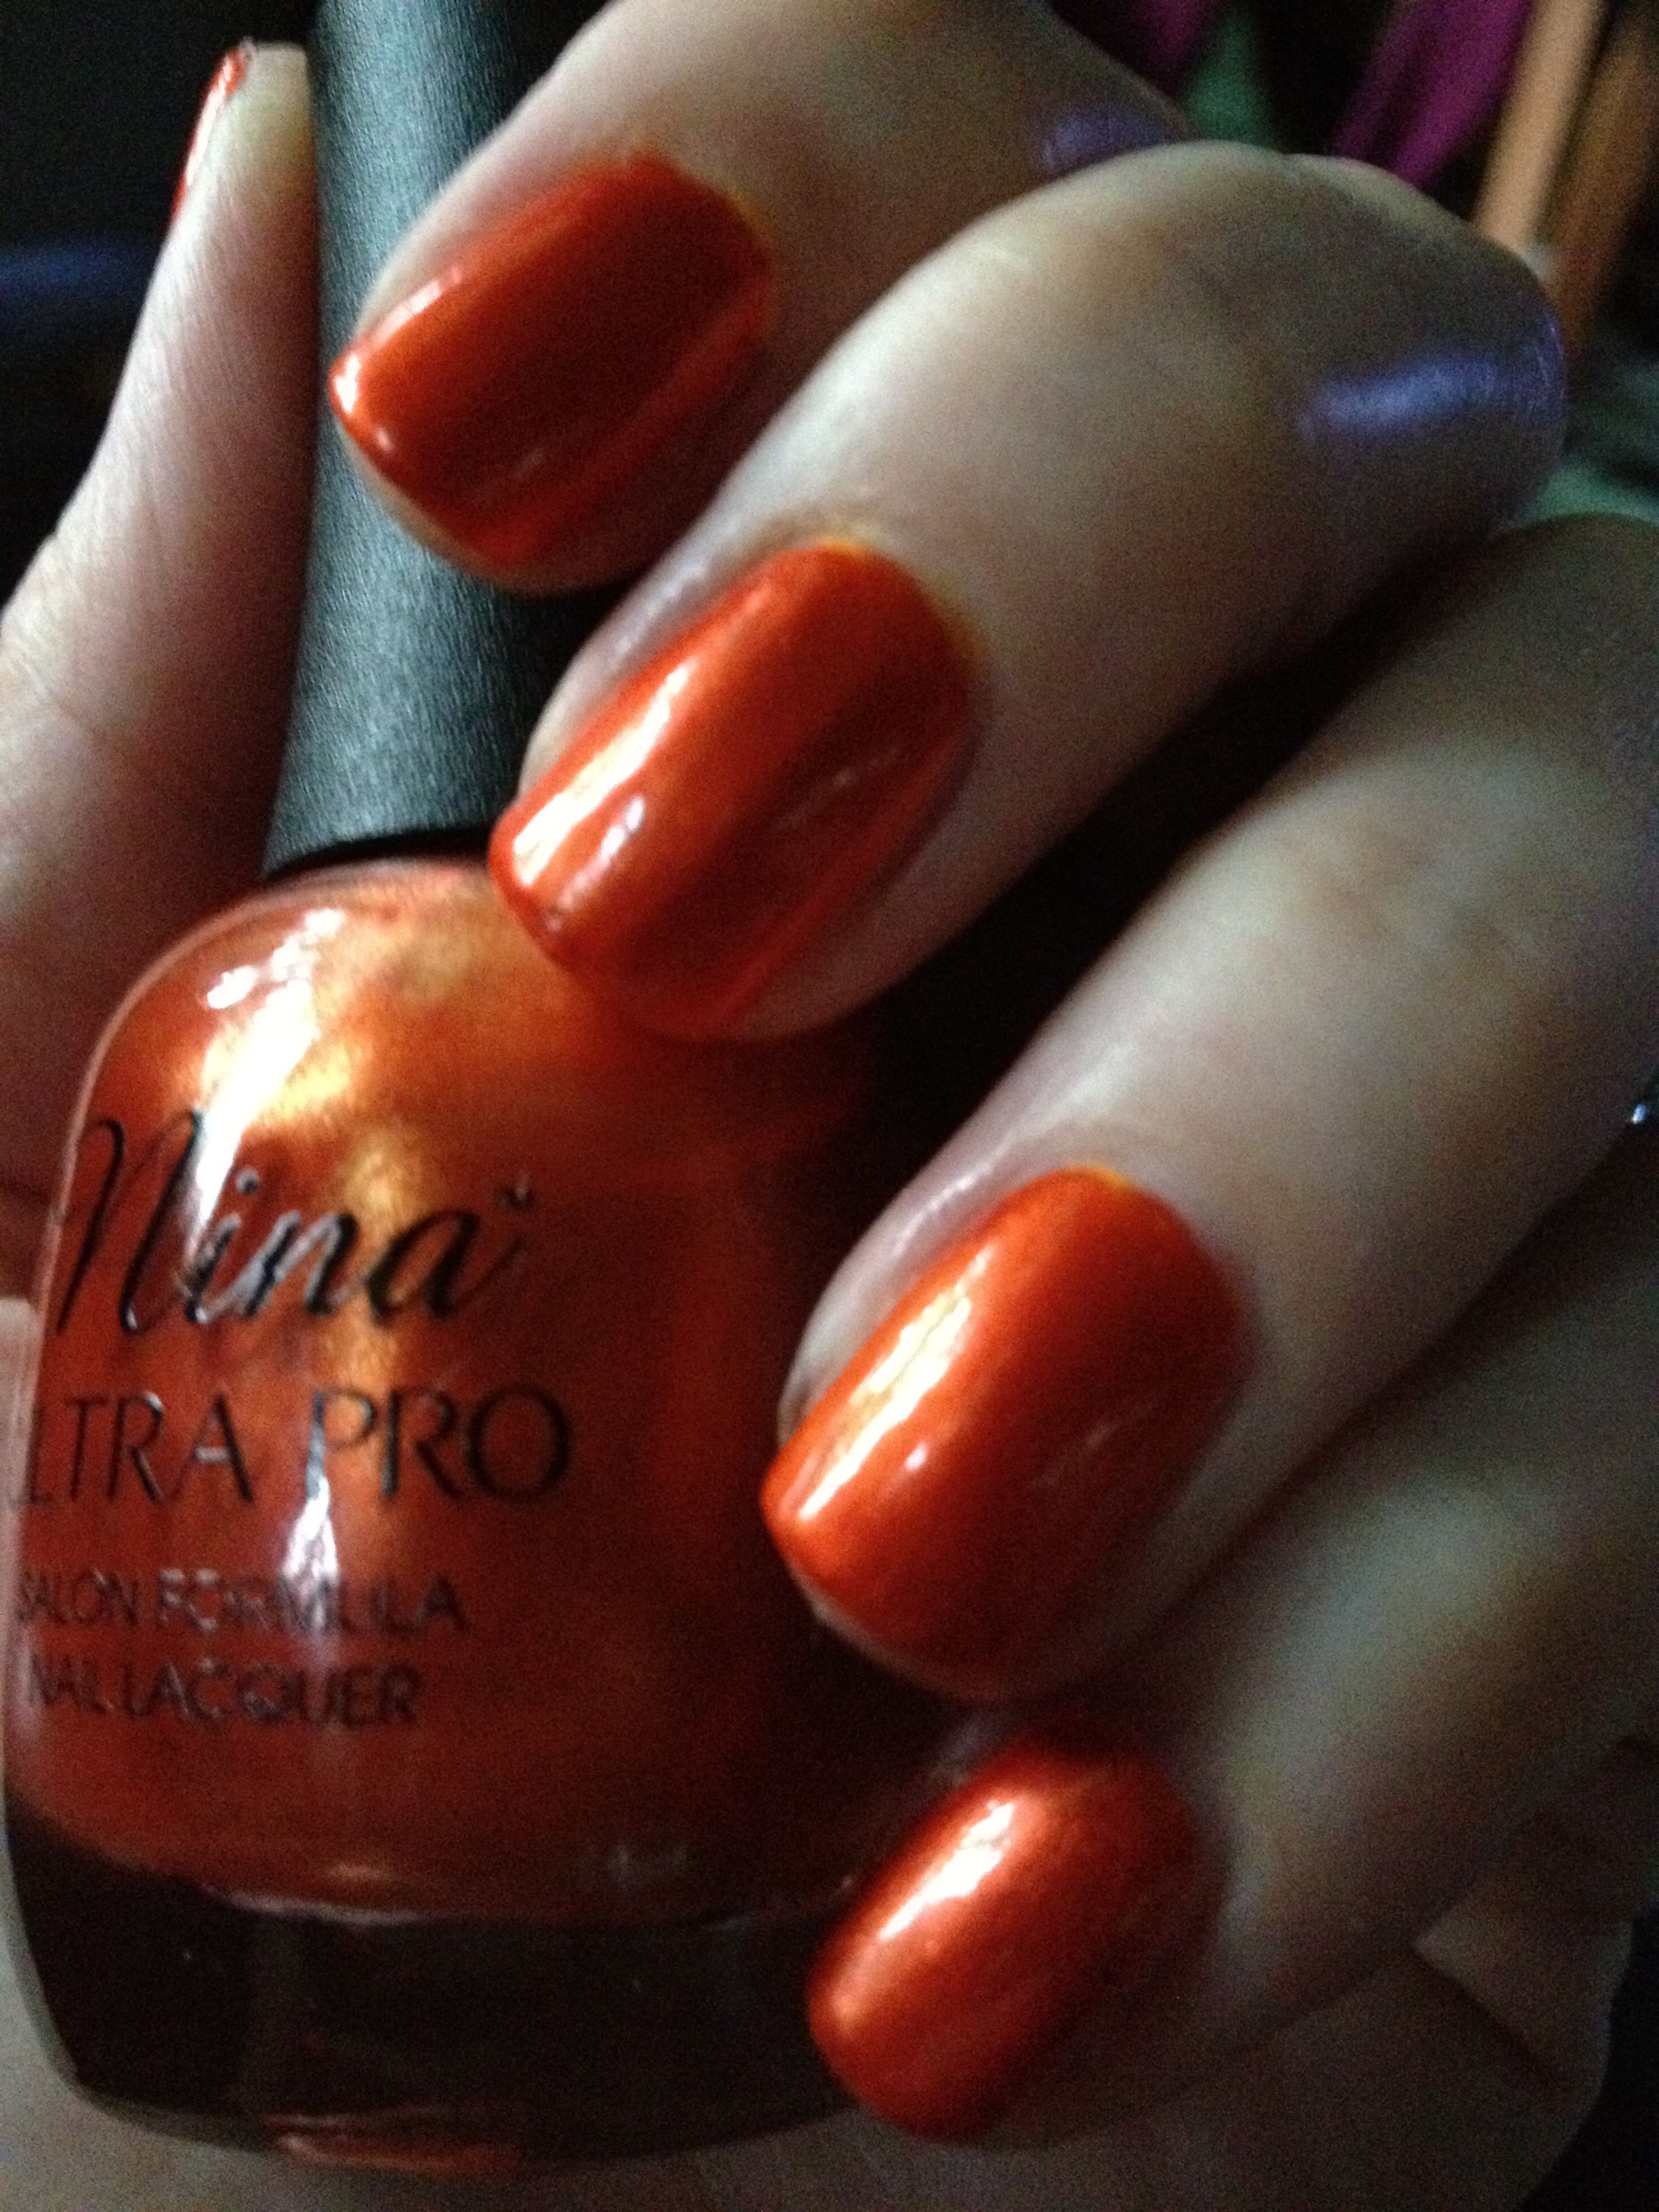 Nina Ultra Pro Burnished Bronze nail polish. Go Florida Gators ...